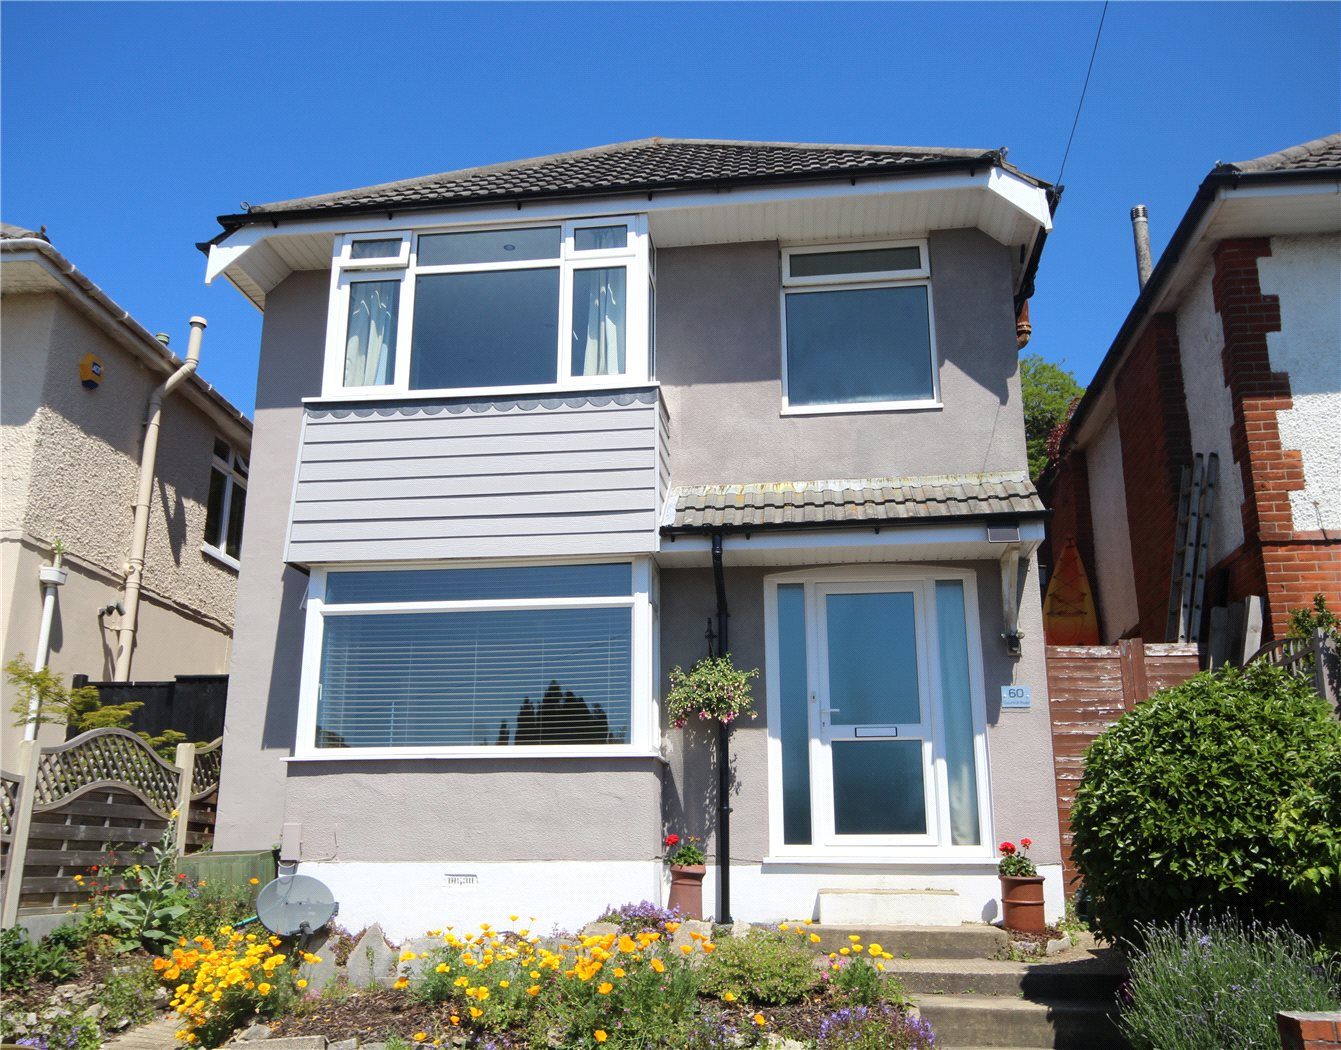 3 Bedrooms Detached House for sale in Courthill Road, Lower Parkstone, Poole, BH14